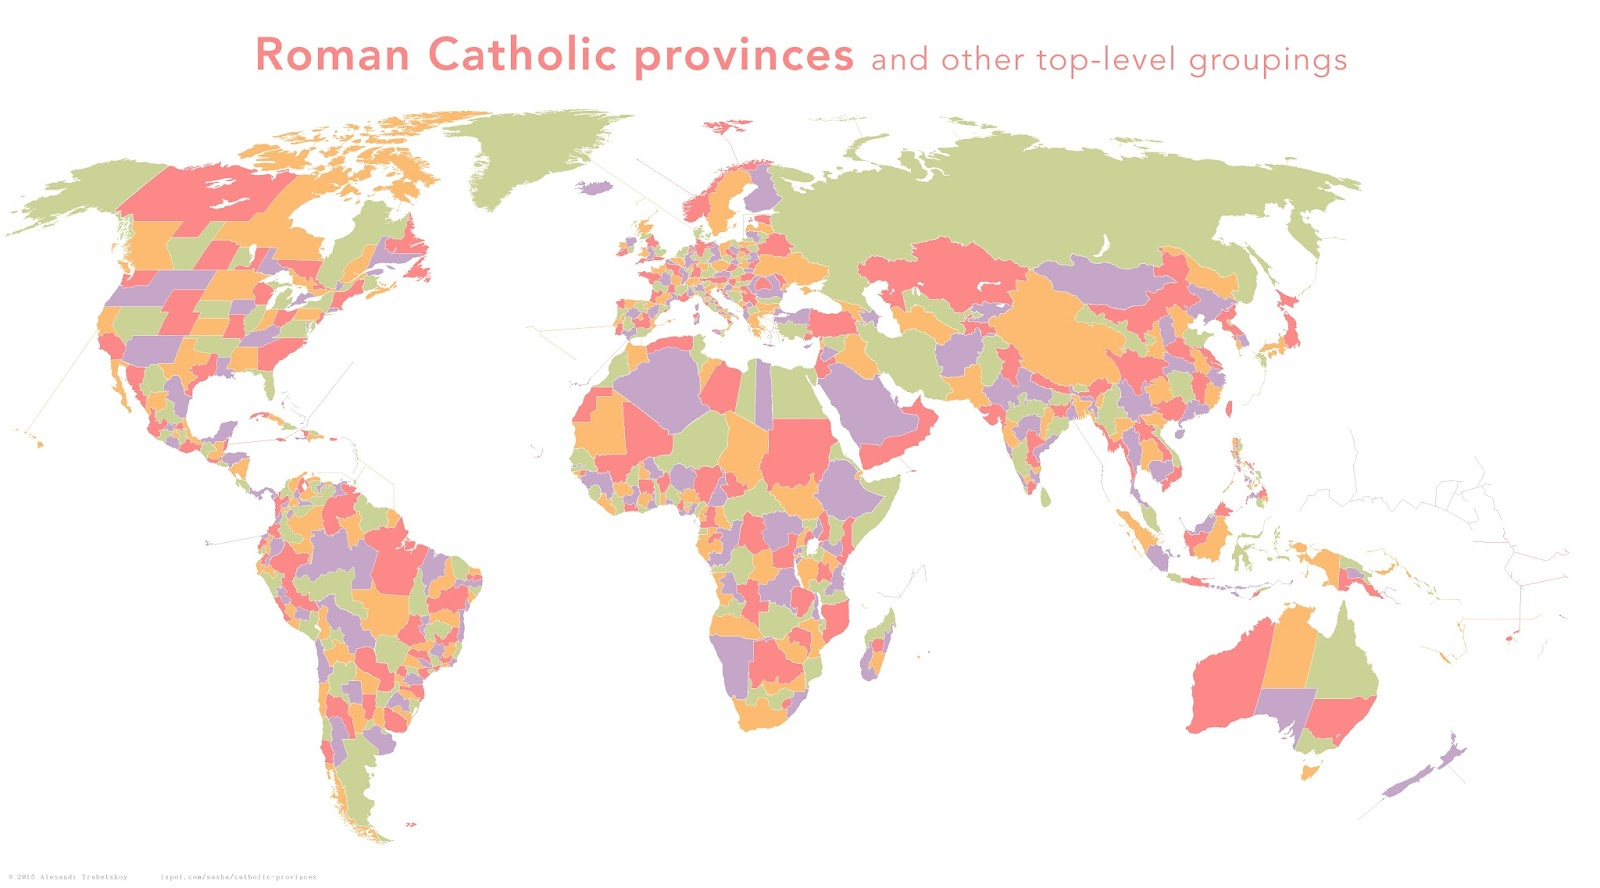 Roman Catholic provinces & other top-level groupings